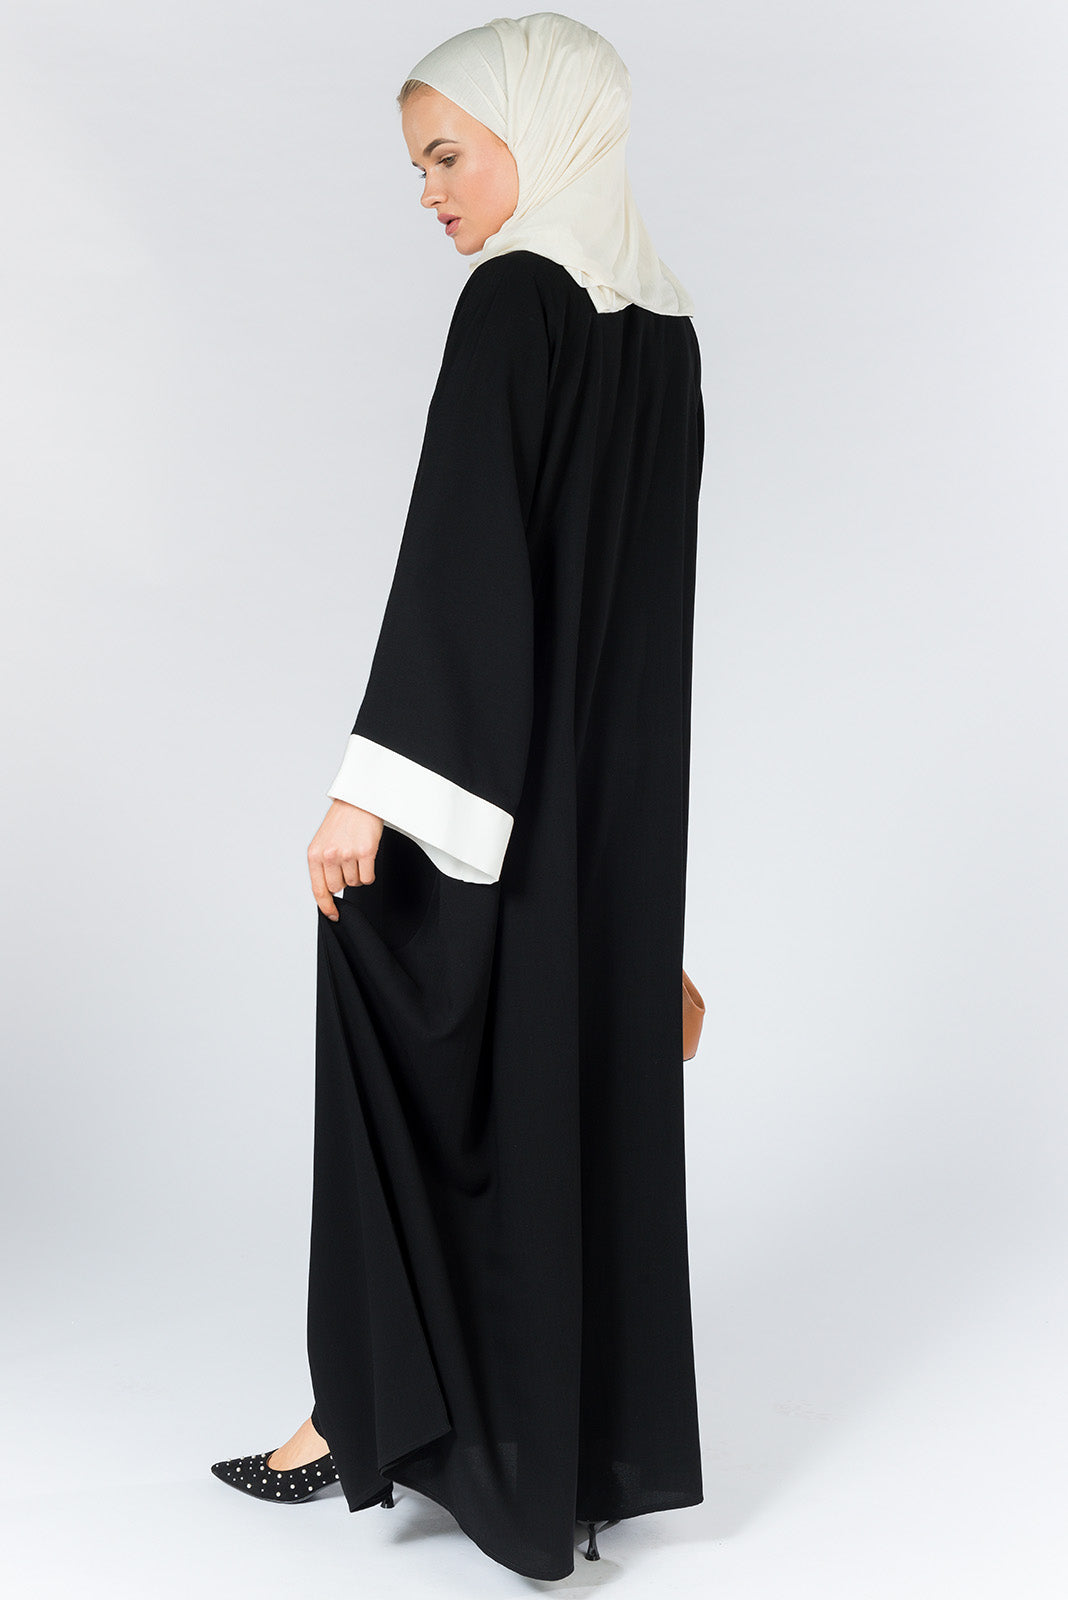 Closed Black Abaya with White Details in Nida